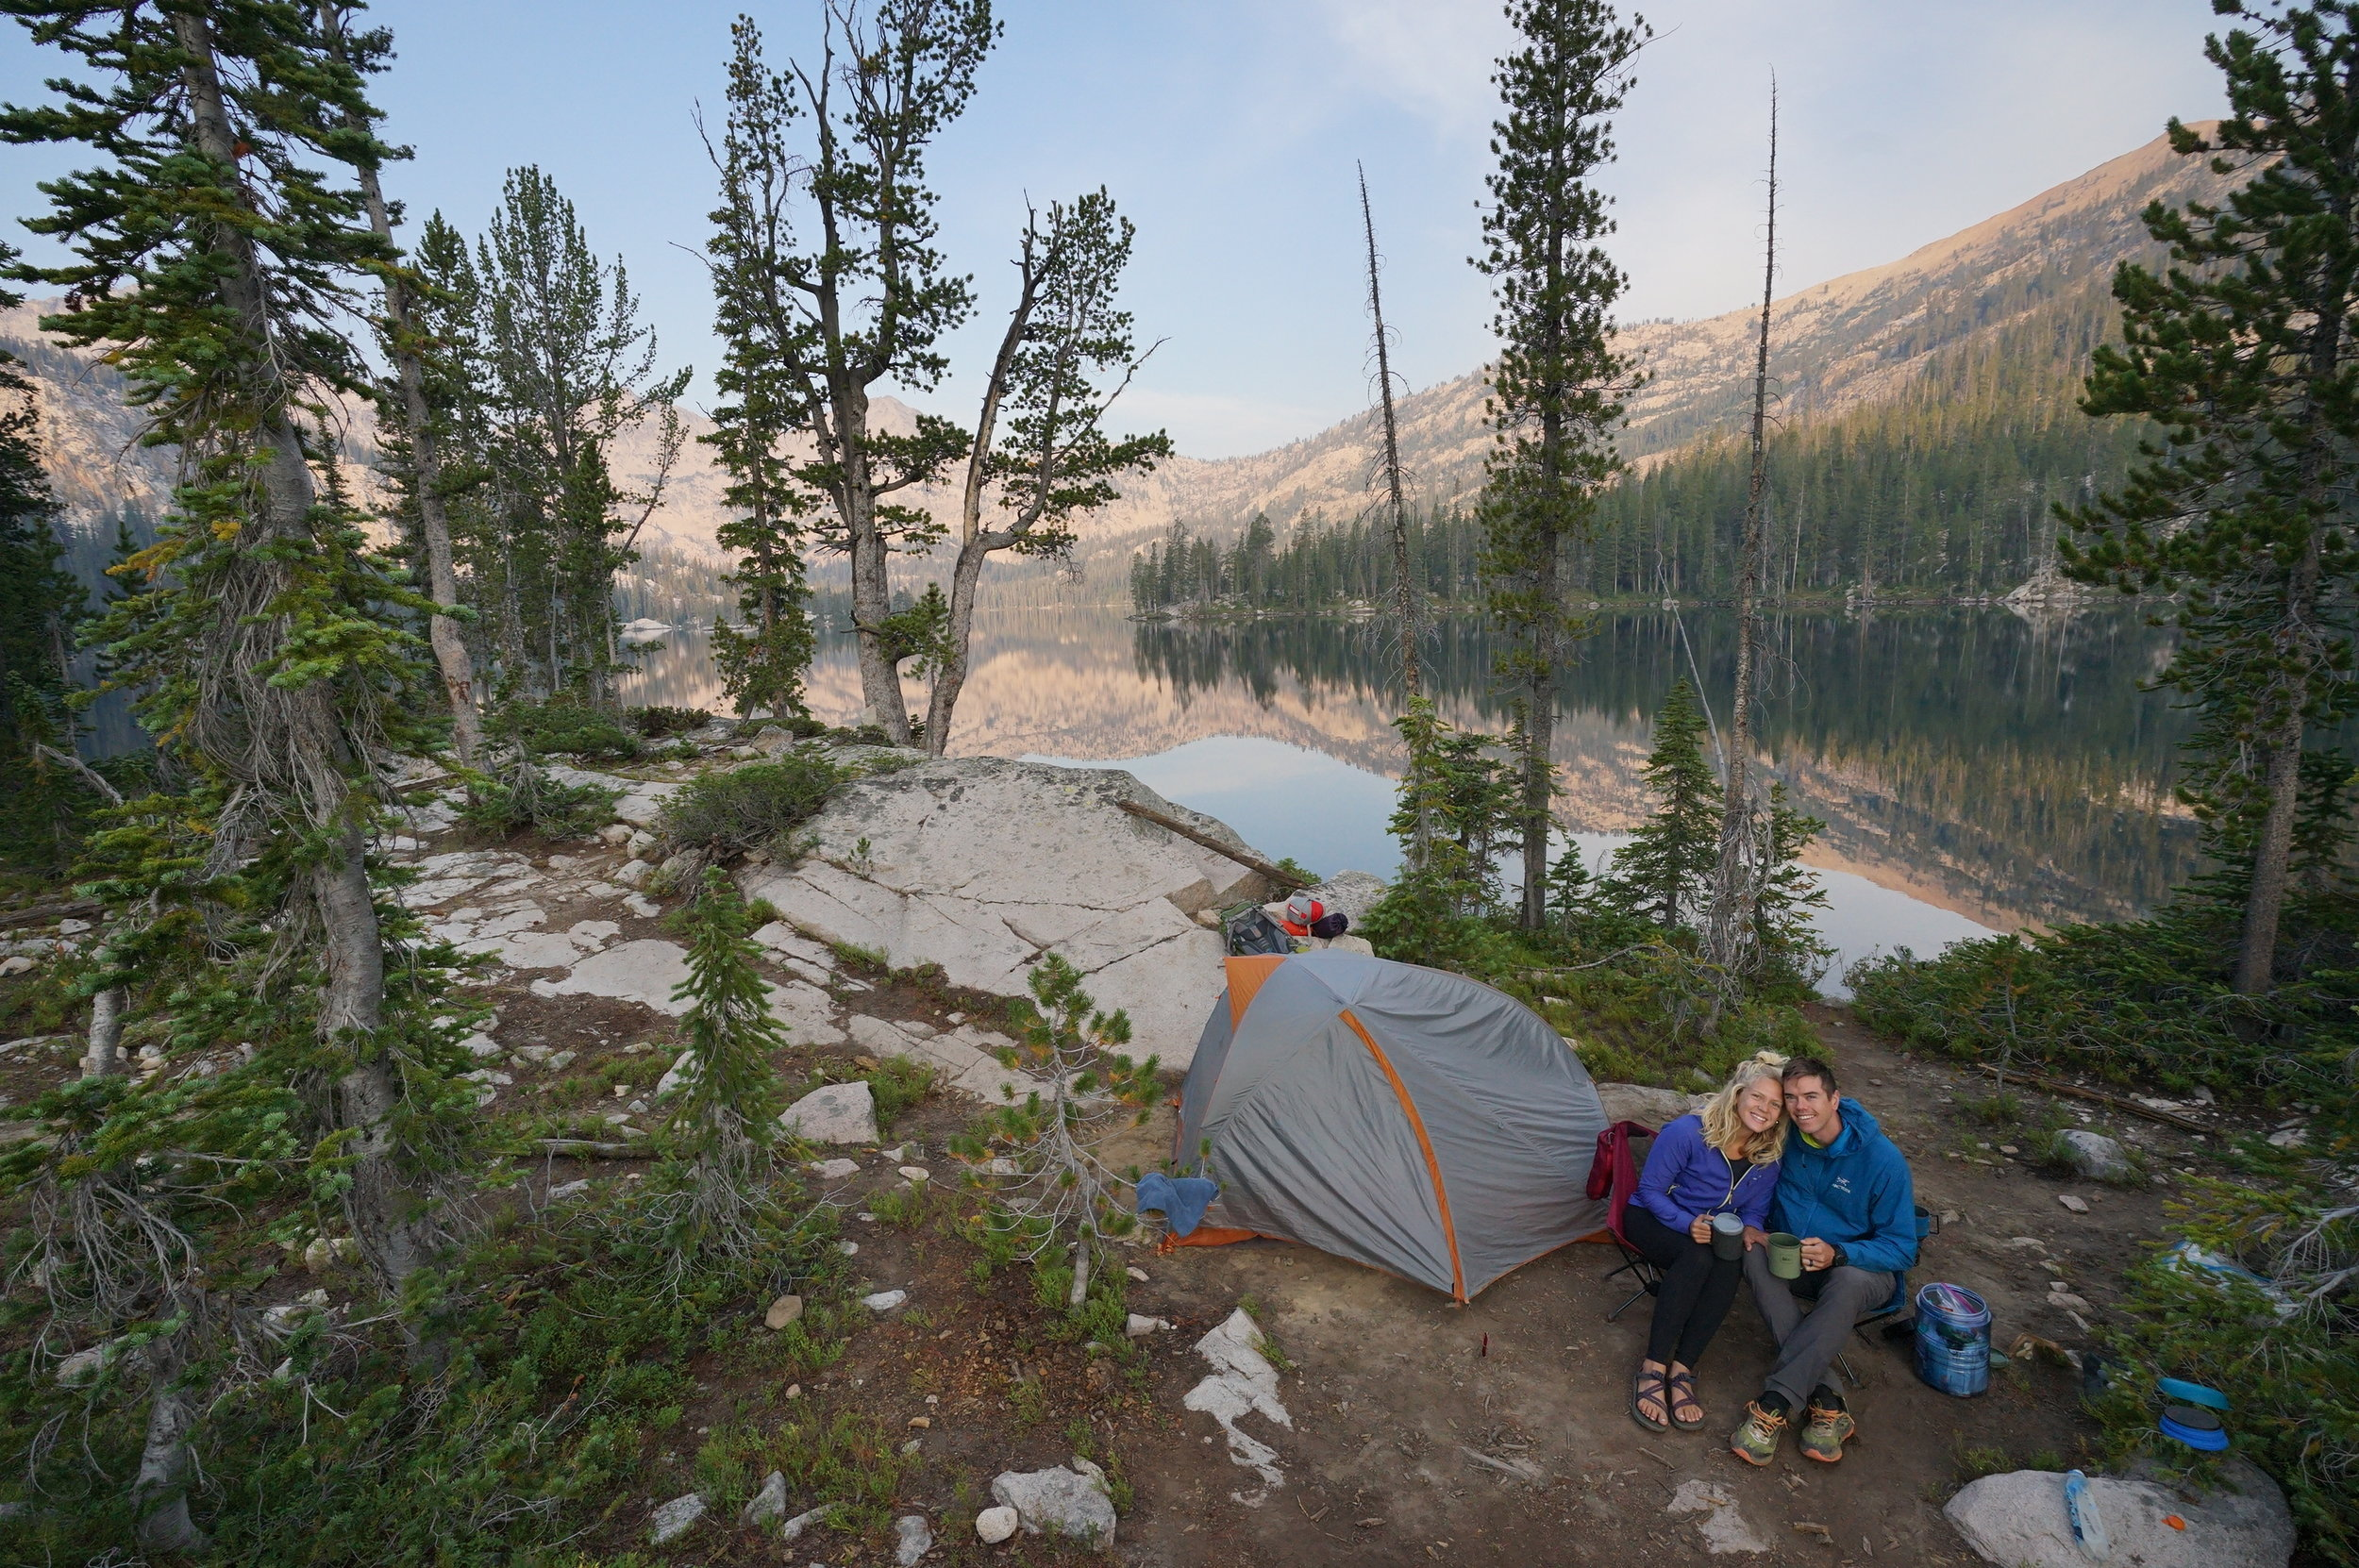 Happy campers backpacking in the Sawtooth Mountains during our third week on the road.